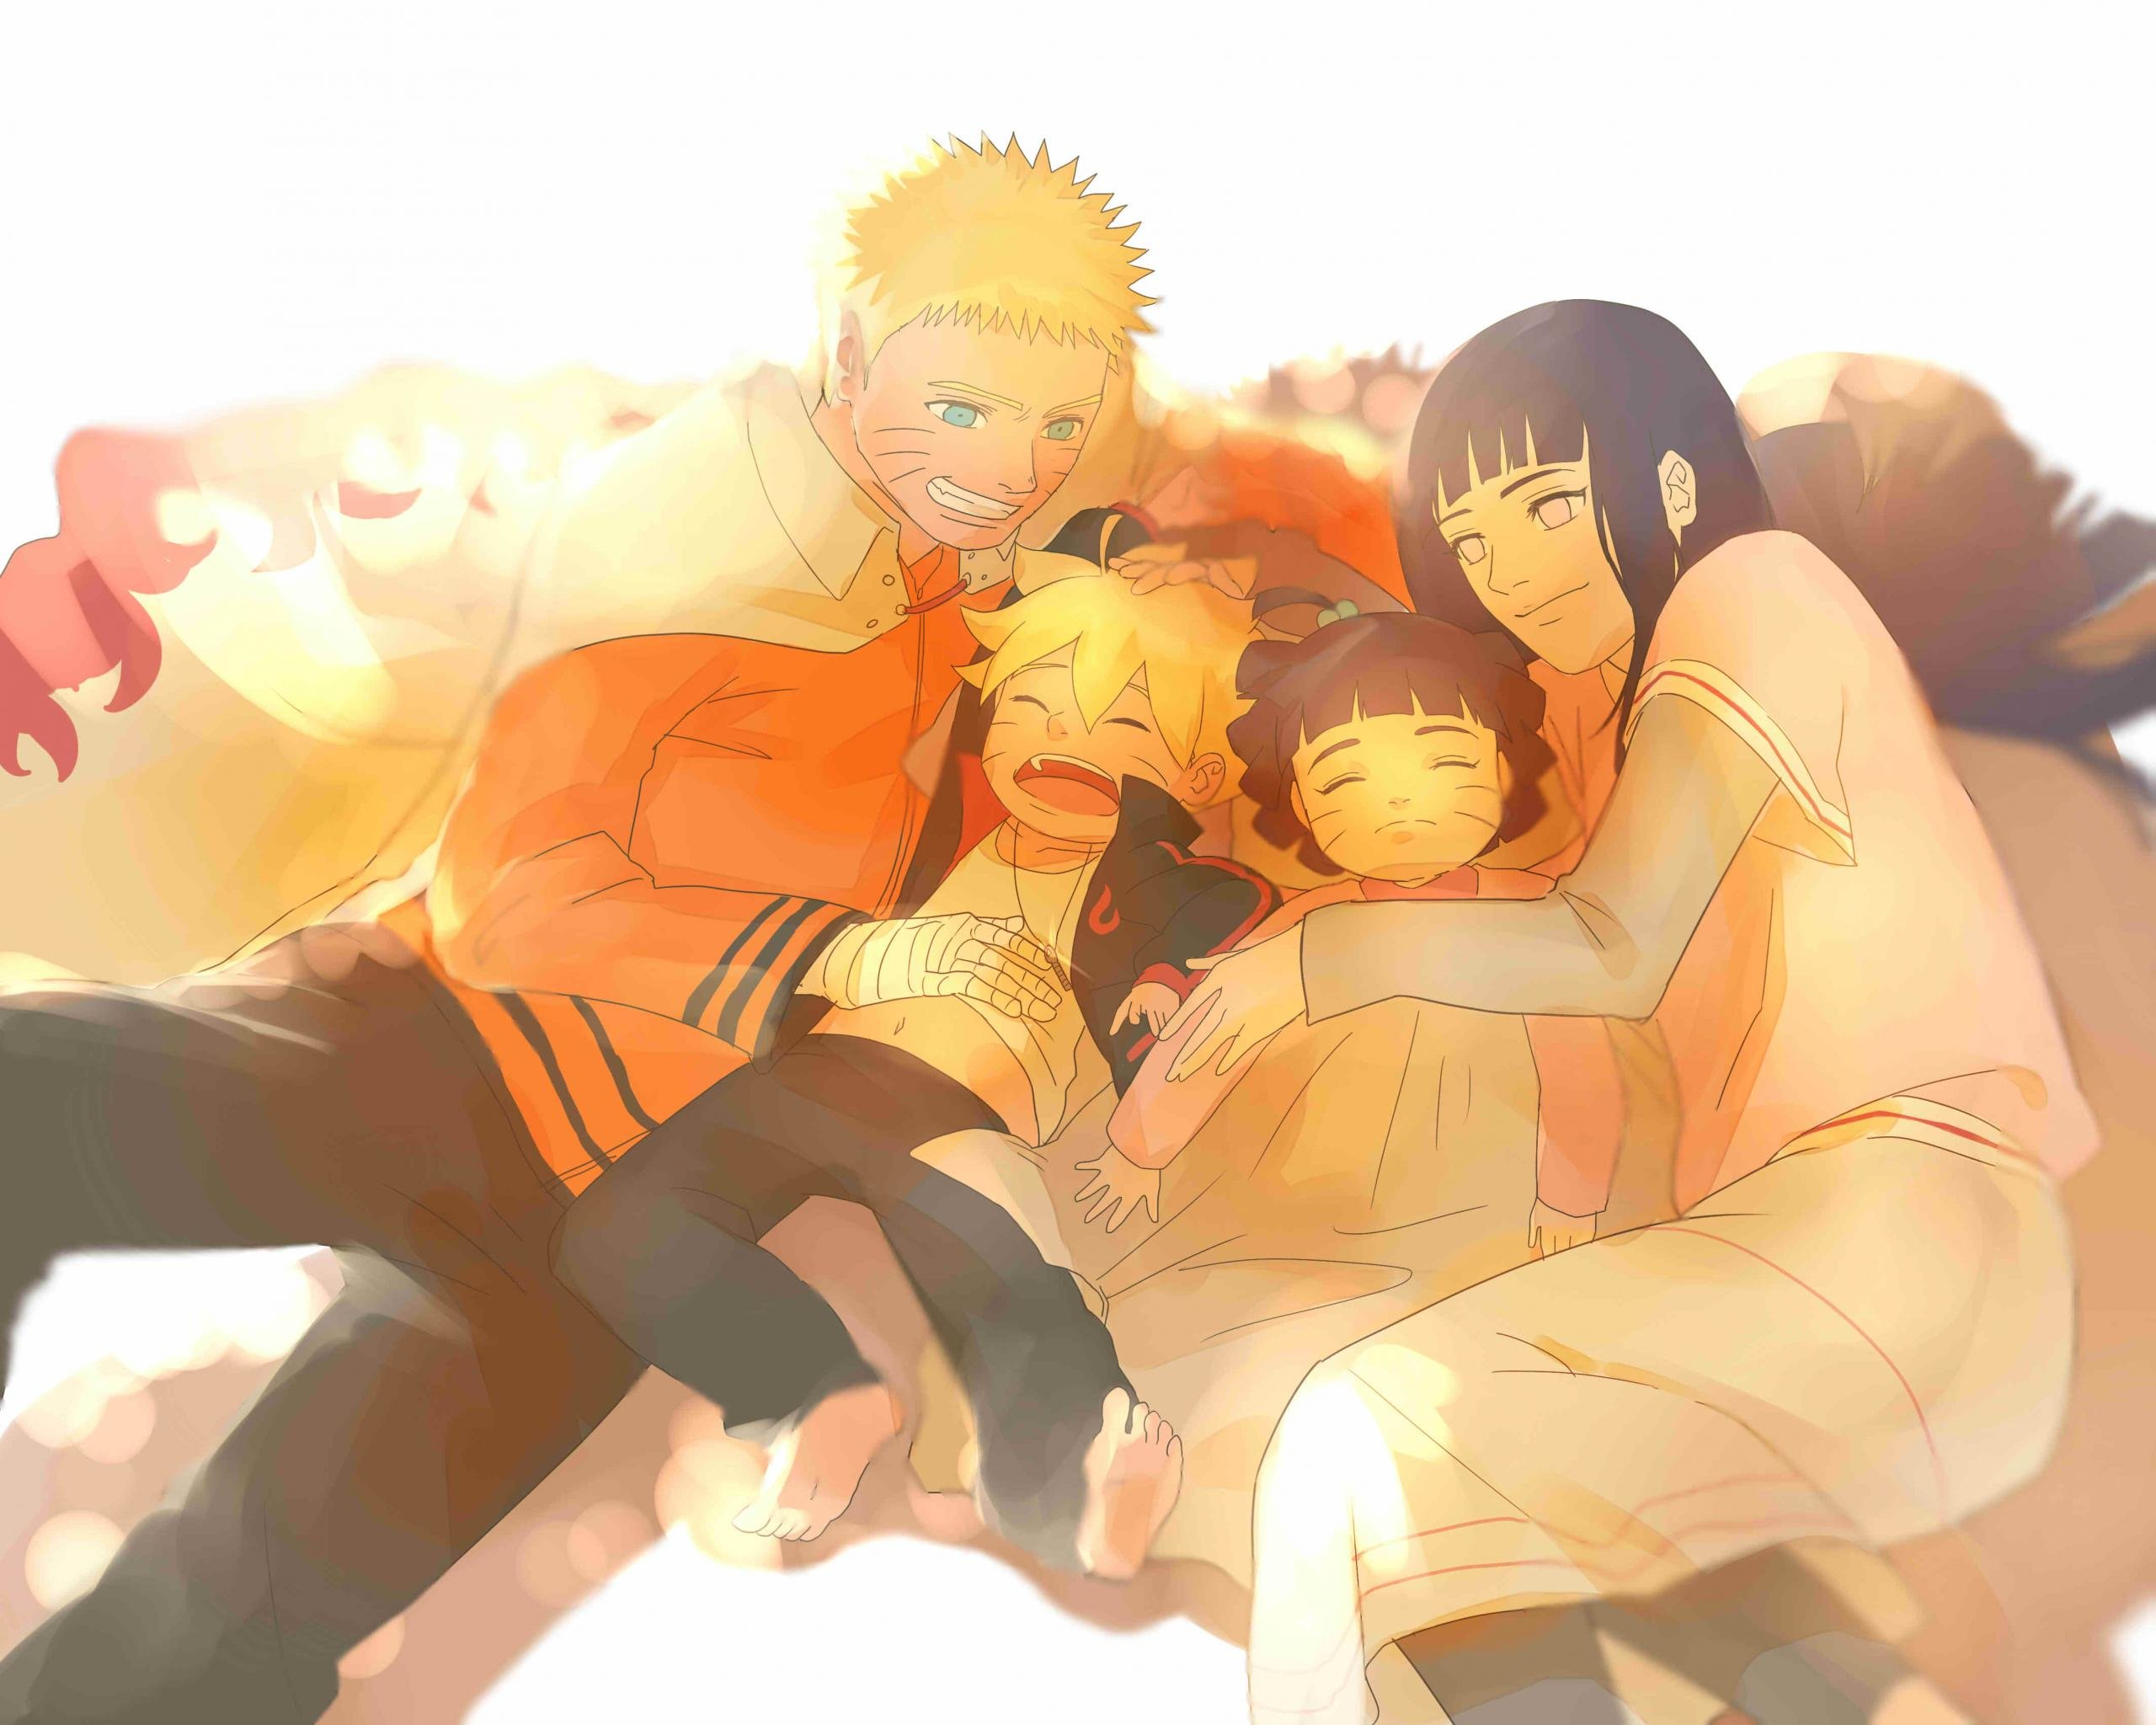 Awesome Boruto: Naruto The Movie free background ID:327397 for hd 2560x2048 desktop